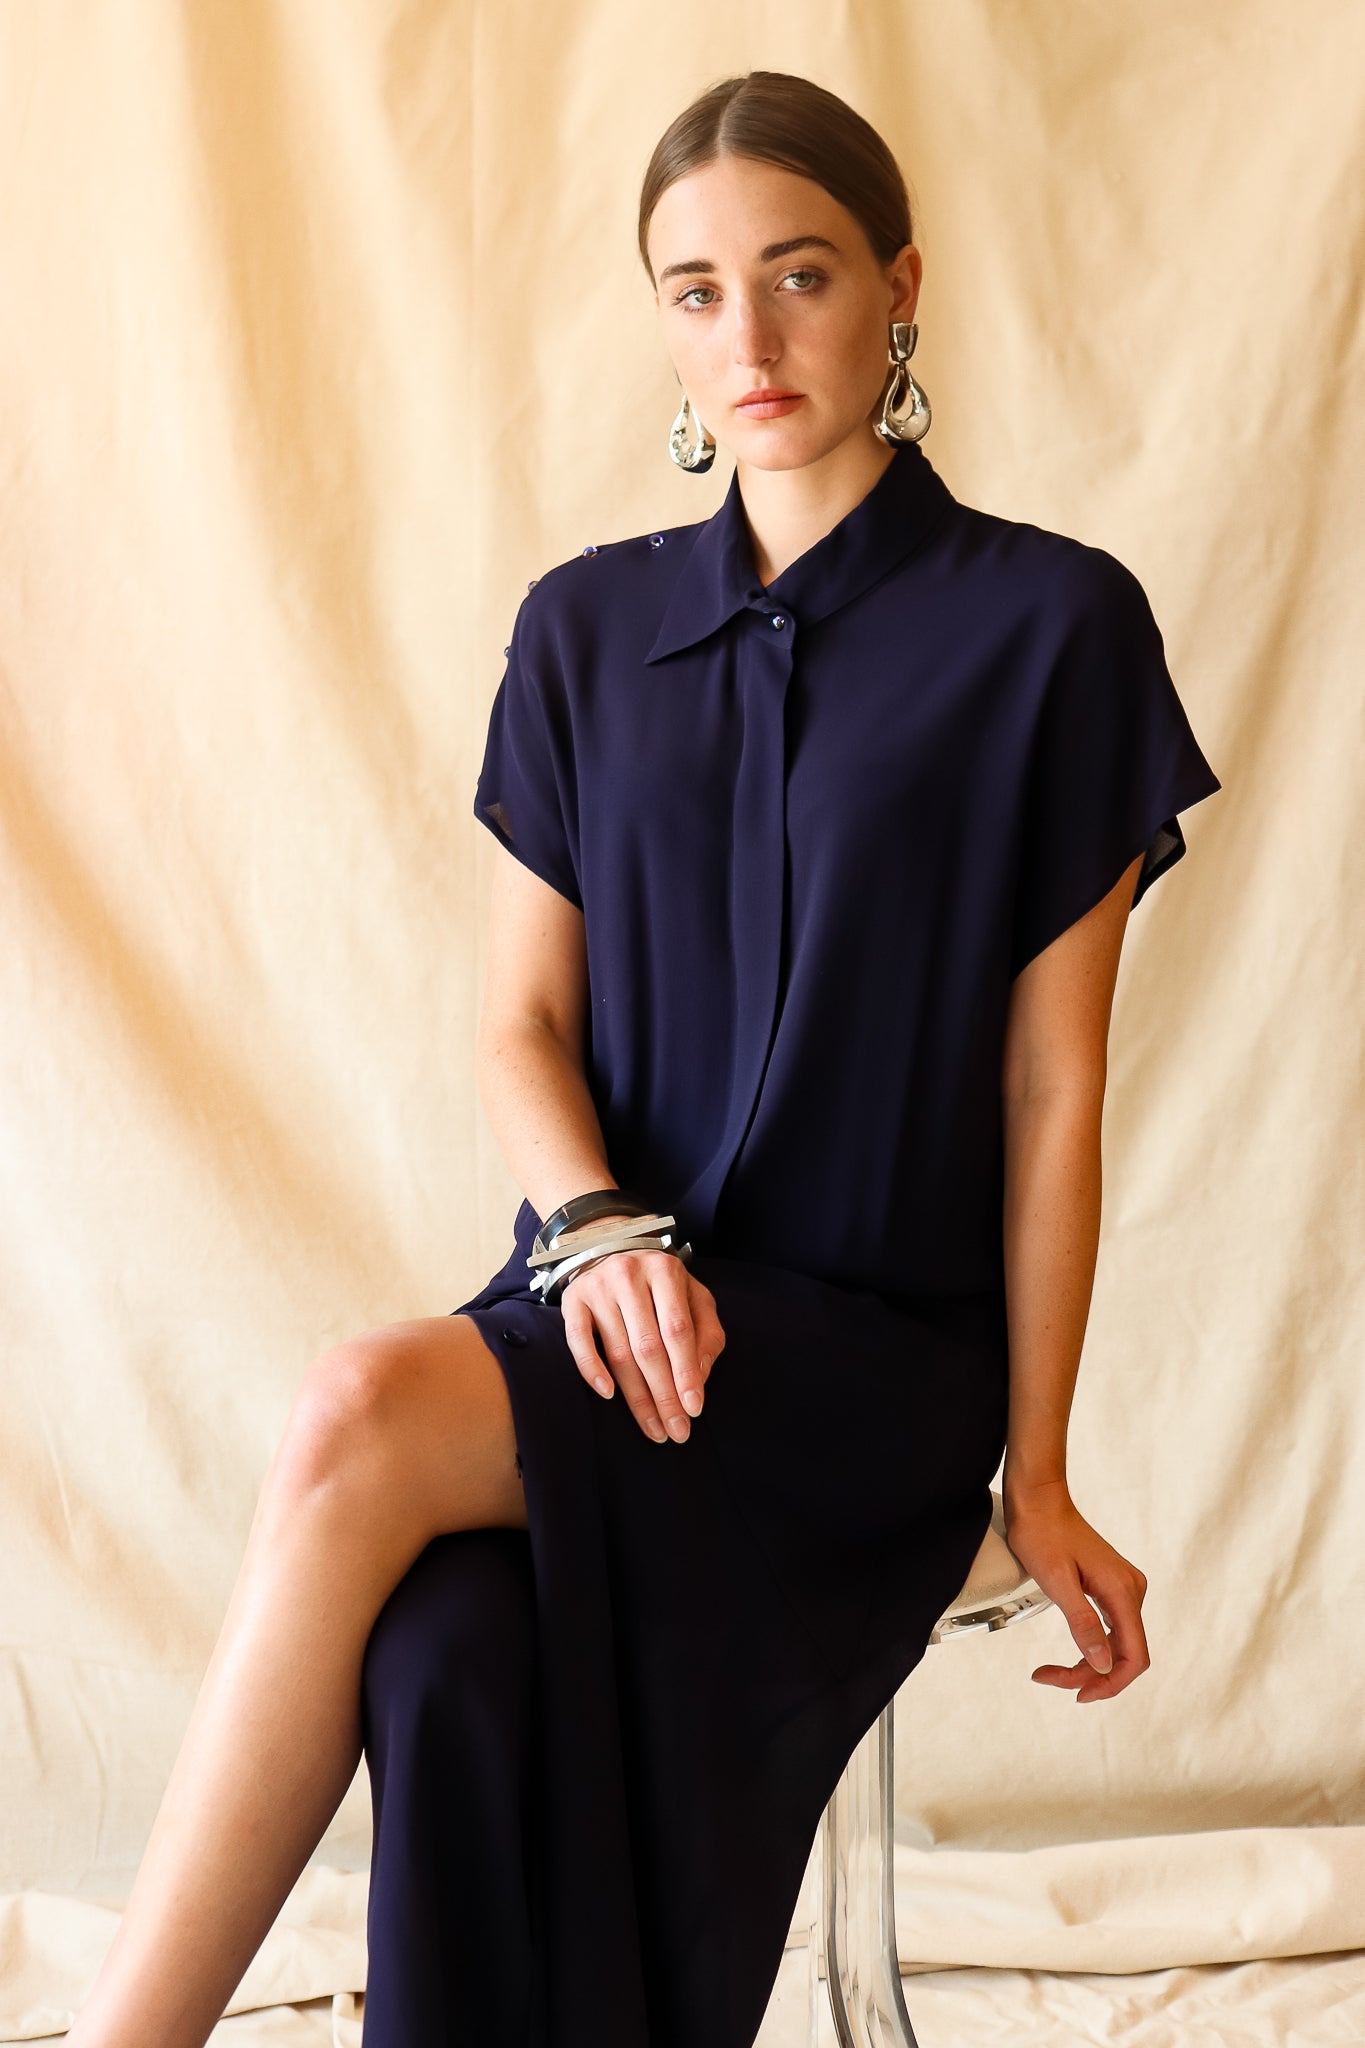 Recess Vintage Consignment LA Girl sitting in sheer navy Karl Lagerfeld Dress